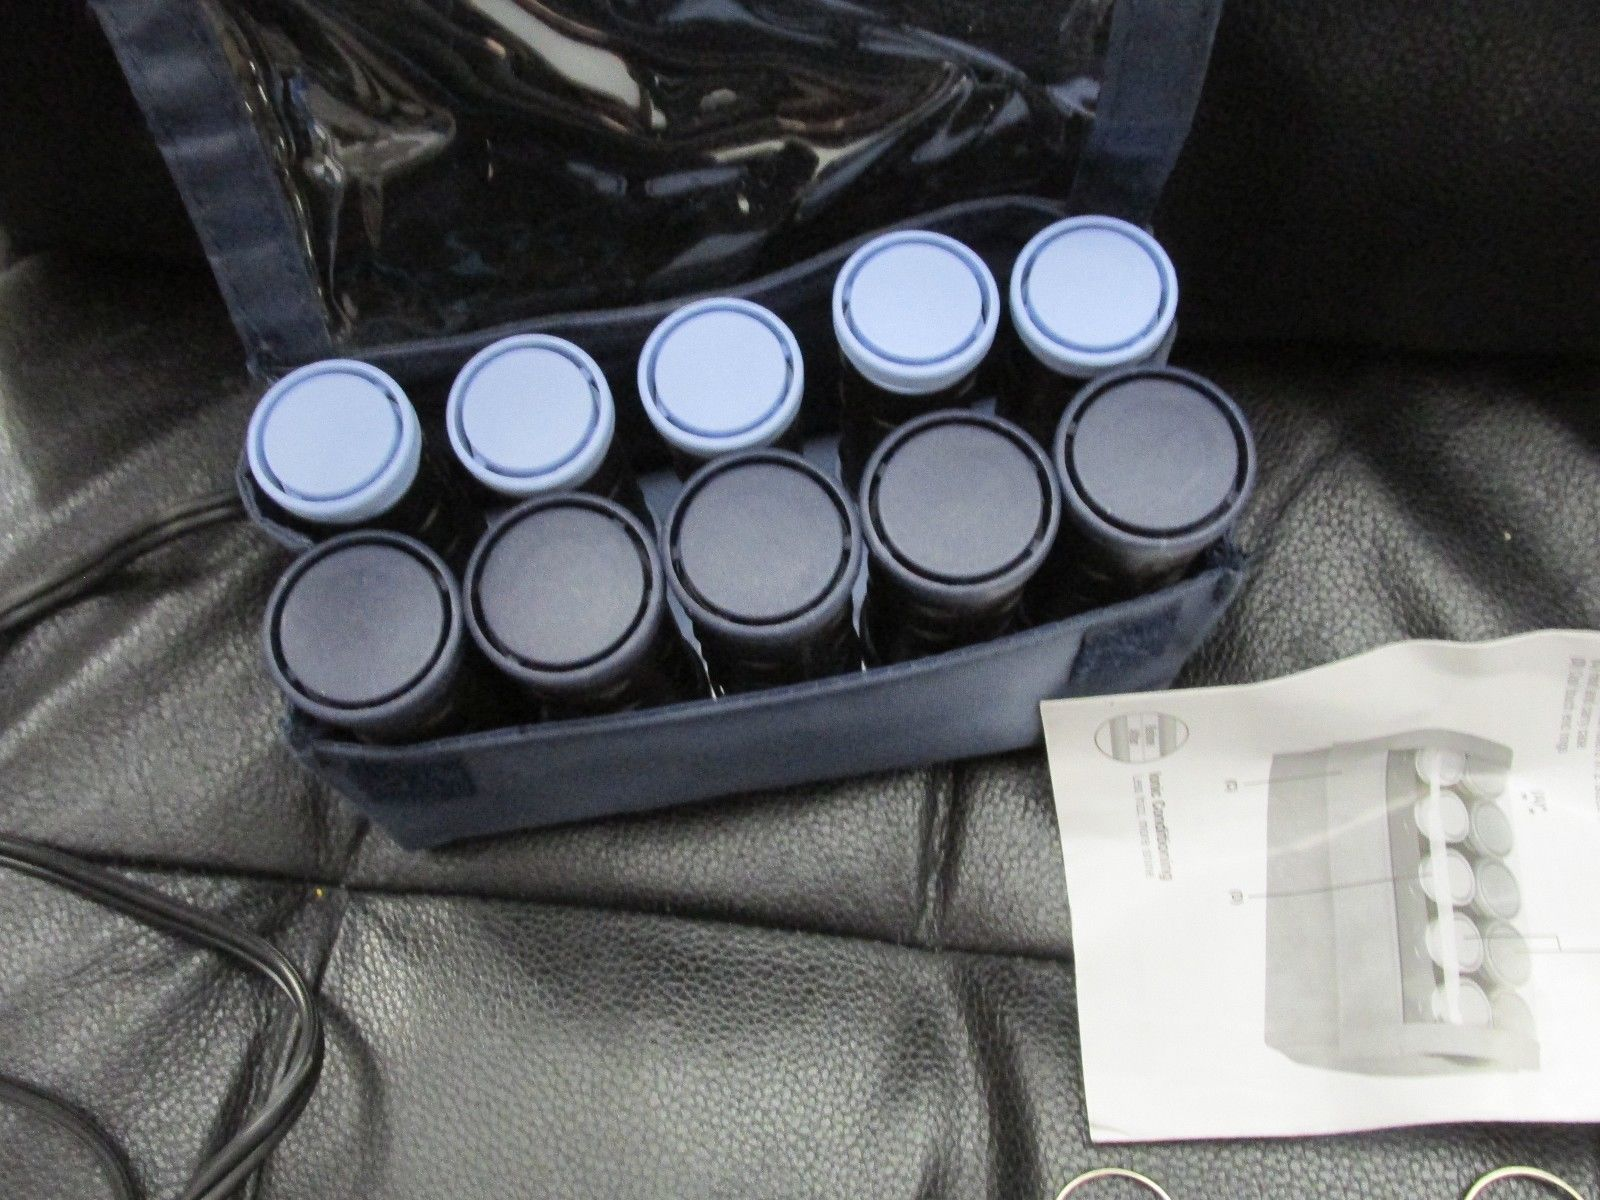 Remington Travel Hot Curlers Rollers w/Clips Model H-1015 EMI blue complete